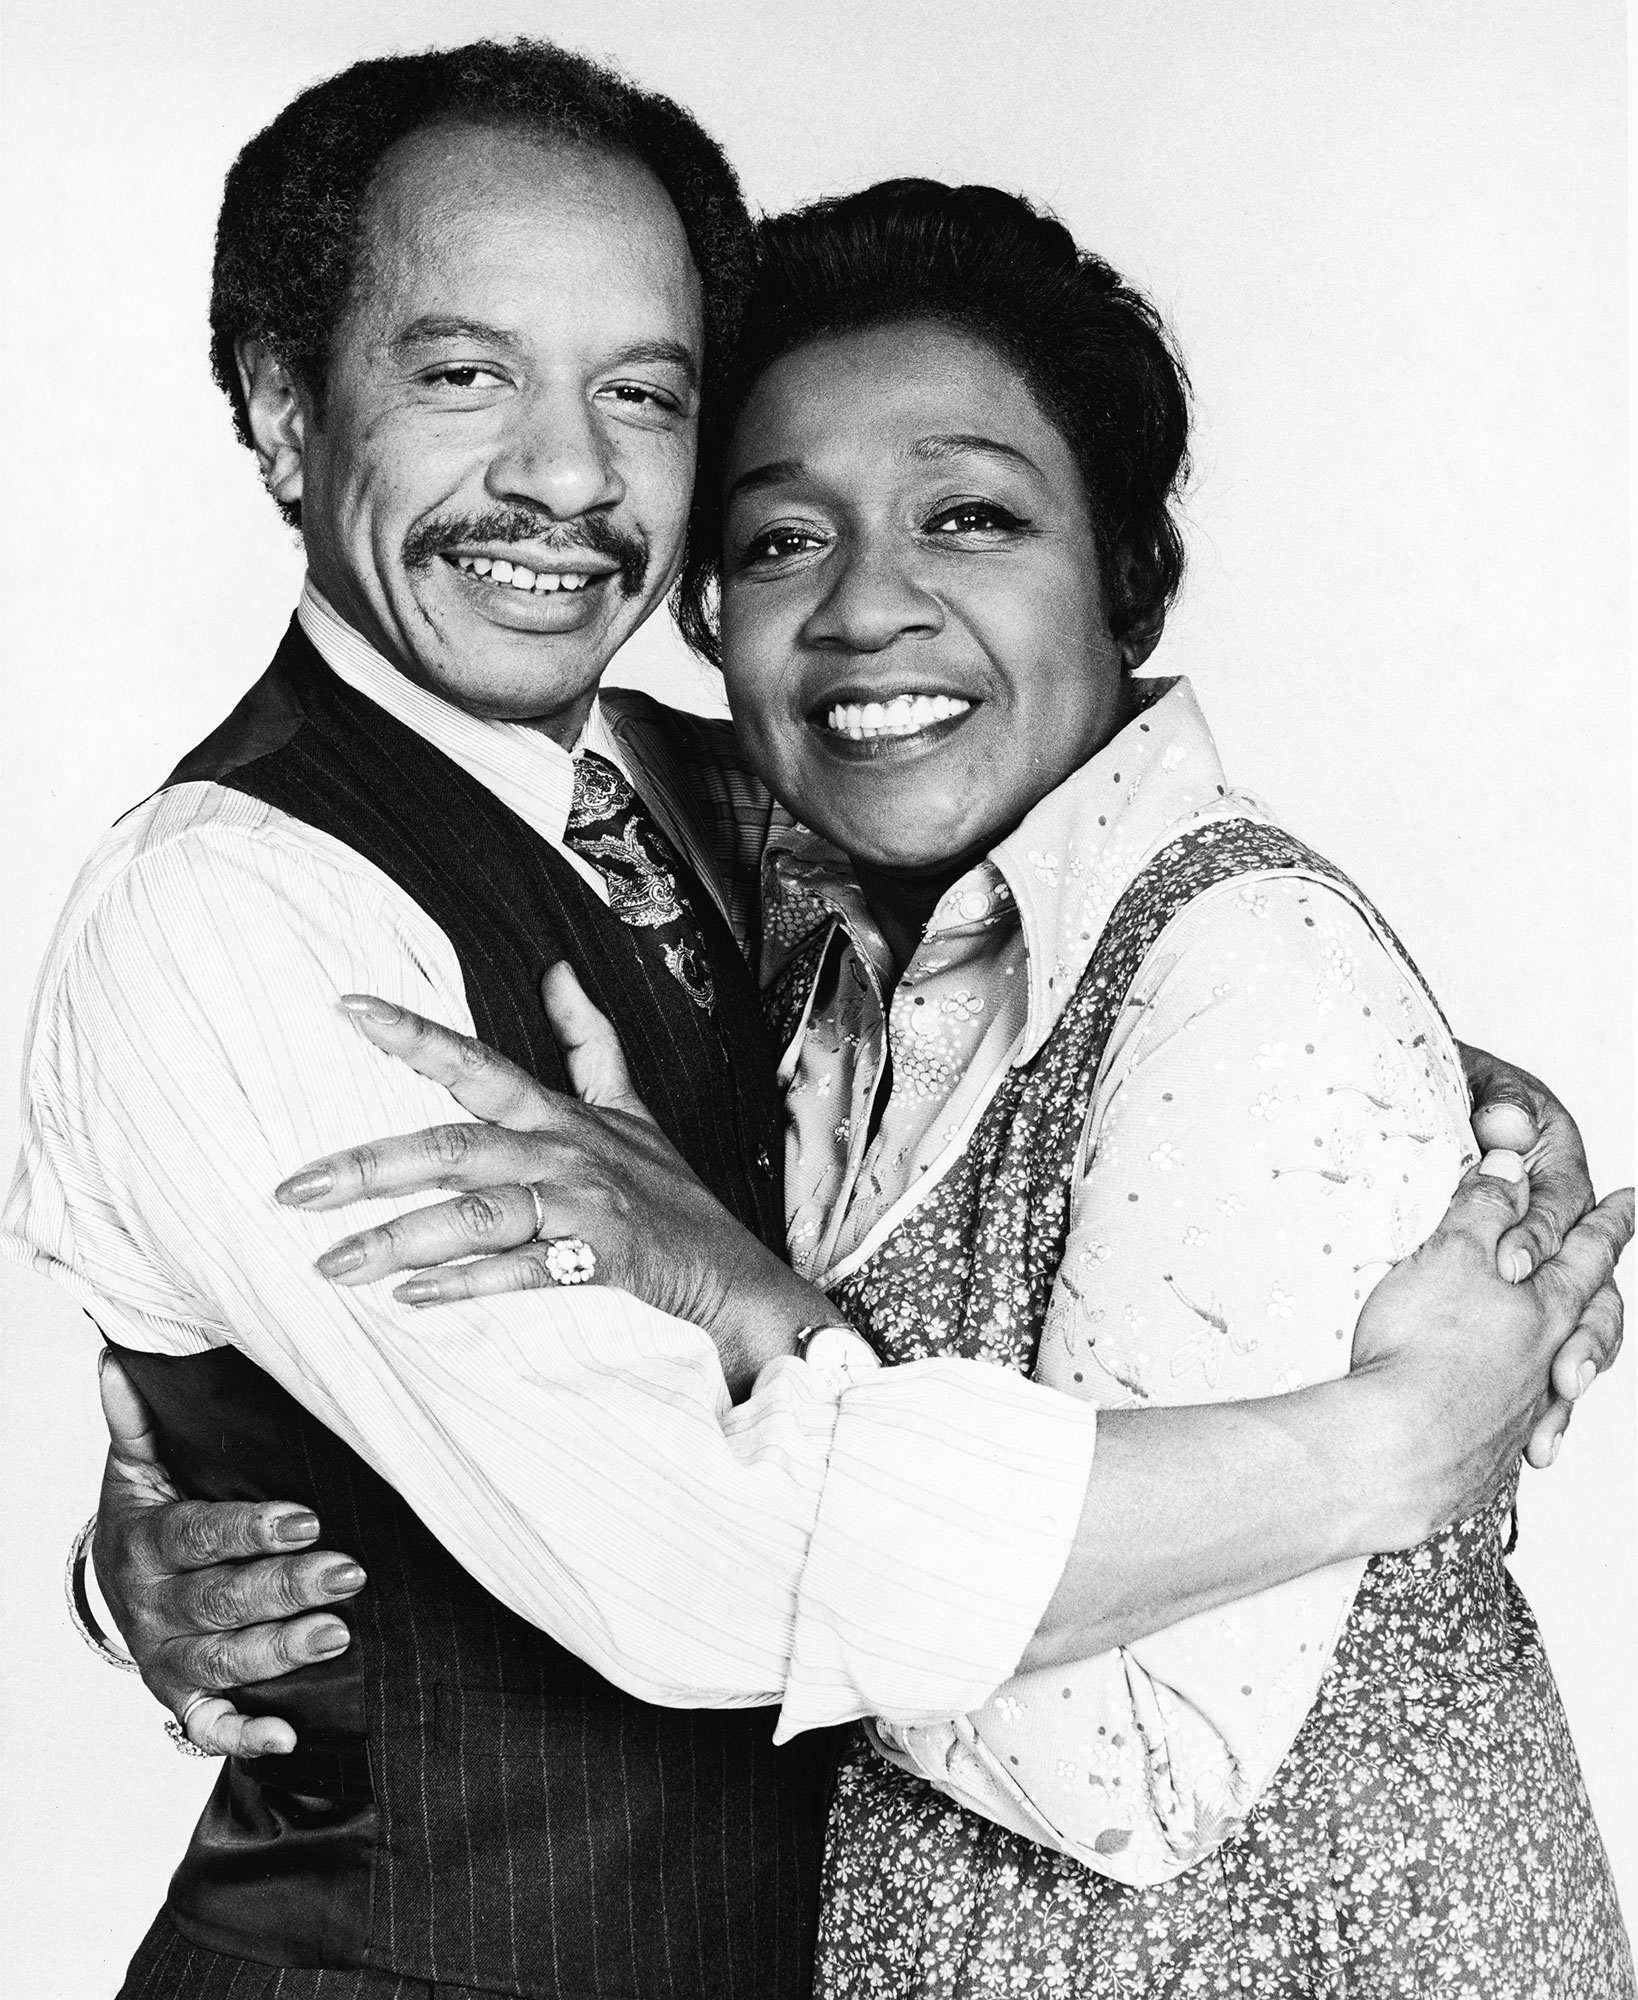 Best TV Couples The Jeffersons Sherman Hemsley Isabel Sanford - Show: The Jeffersons Actors: Sherman Hemsley and Isabel Sanford Network: CBS Seasons: 11